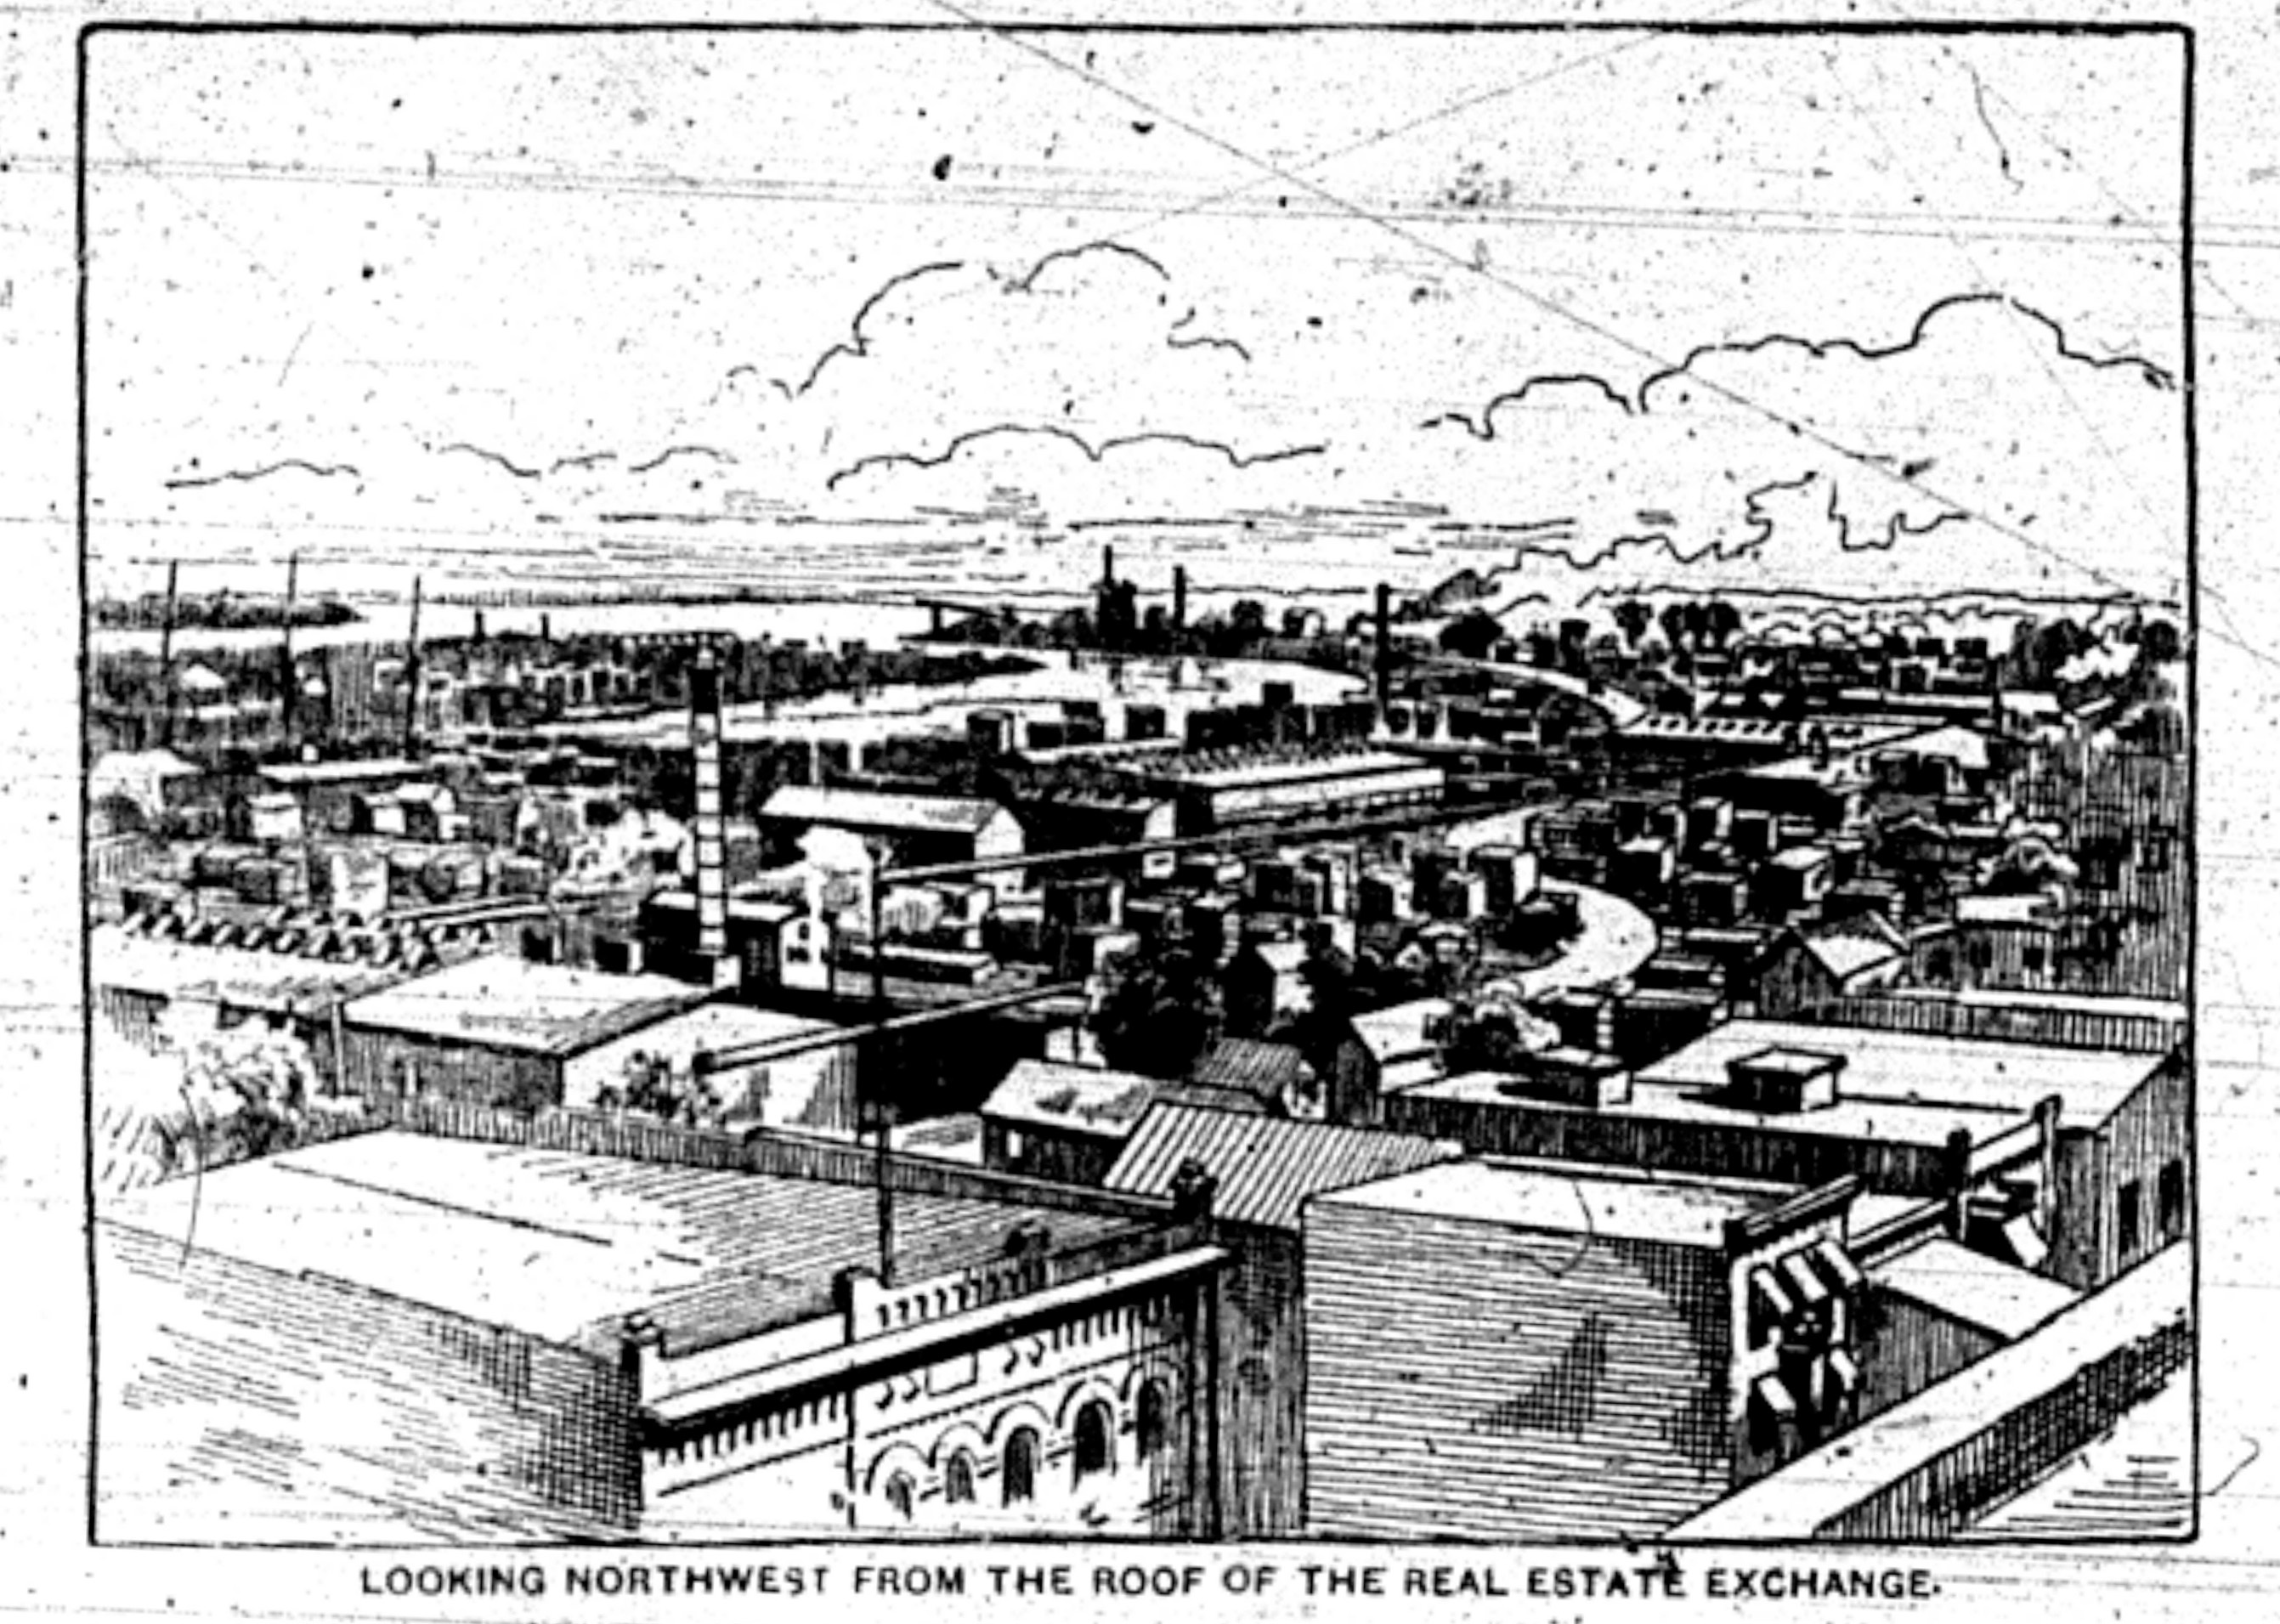 Looking northwest form the roof of the Real Estate Exchange, illustration (1893-08-05 Tonawanda News).jpg